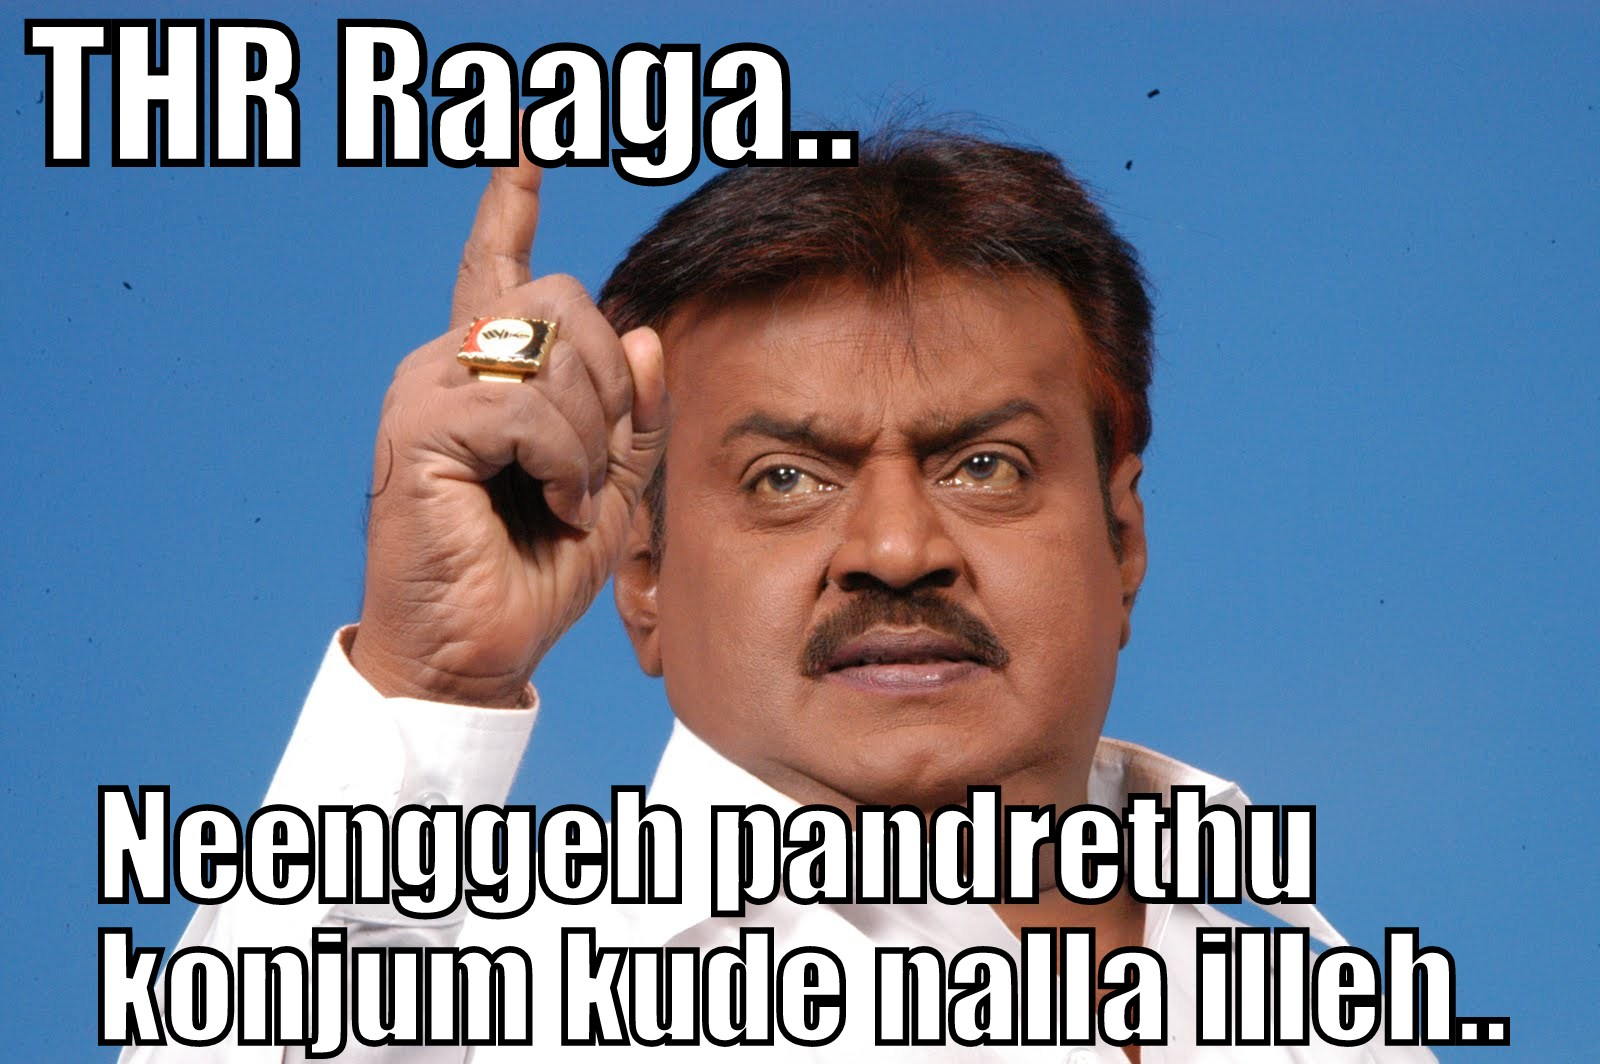 THR raaga should get their act together